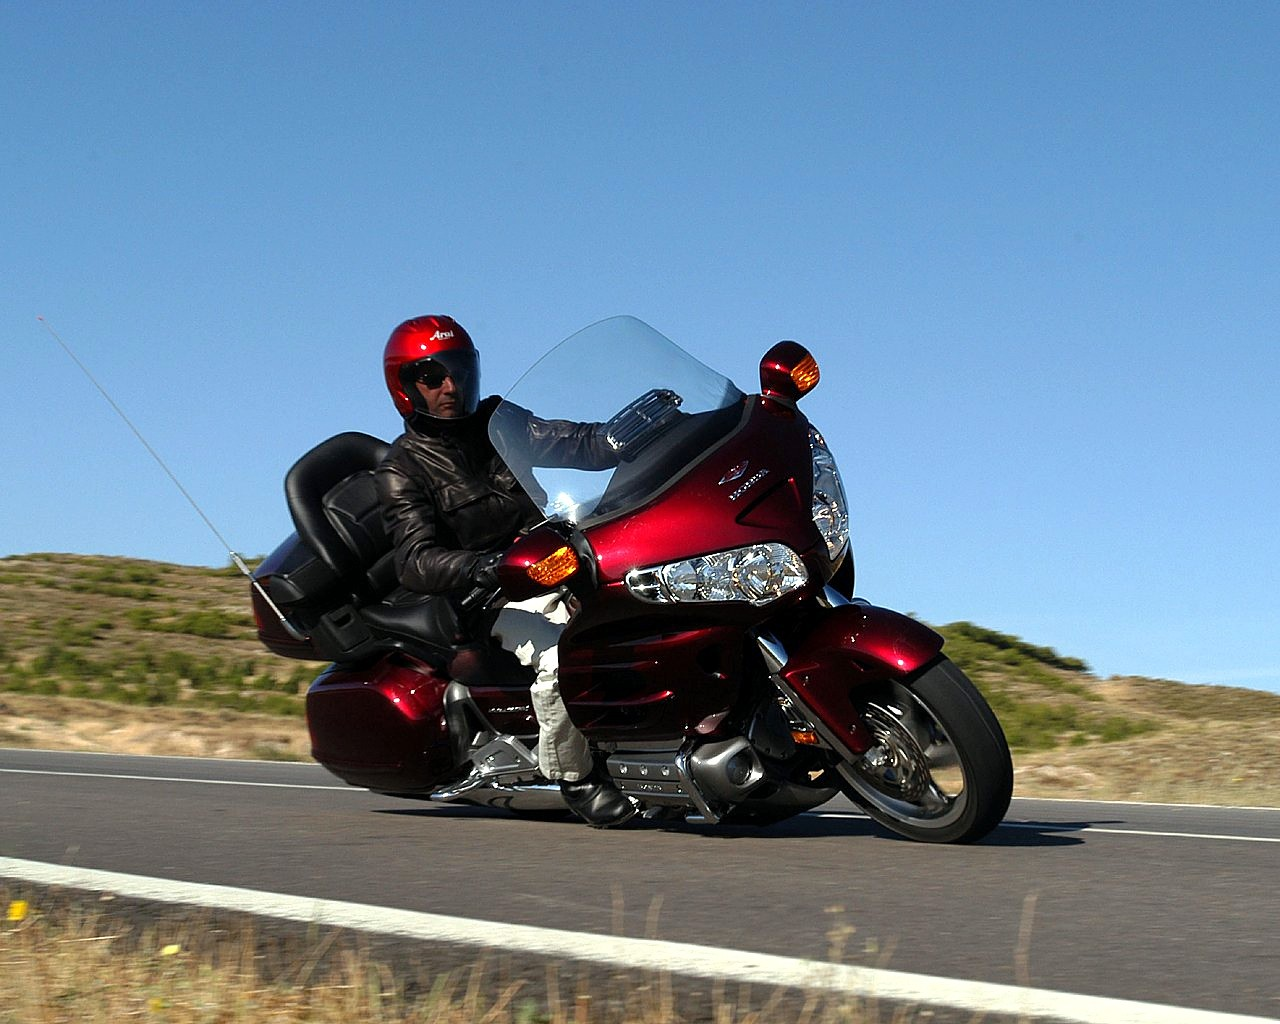 Honda Goldwing Wallpapers HD Desktop and Mobile Backgrounds 1280x1024